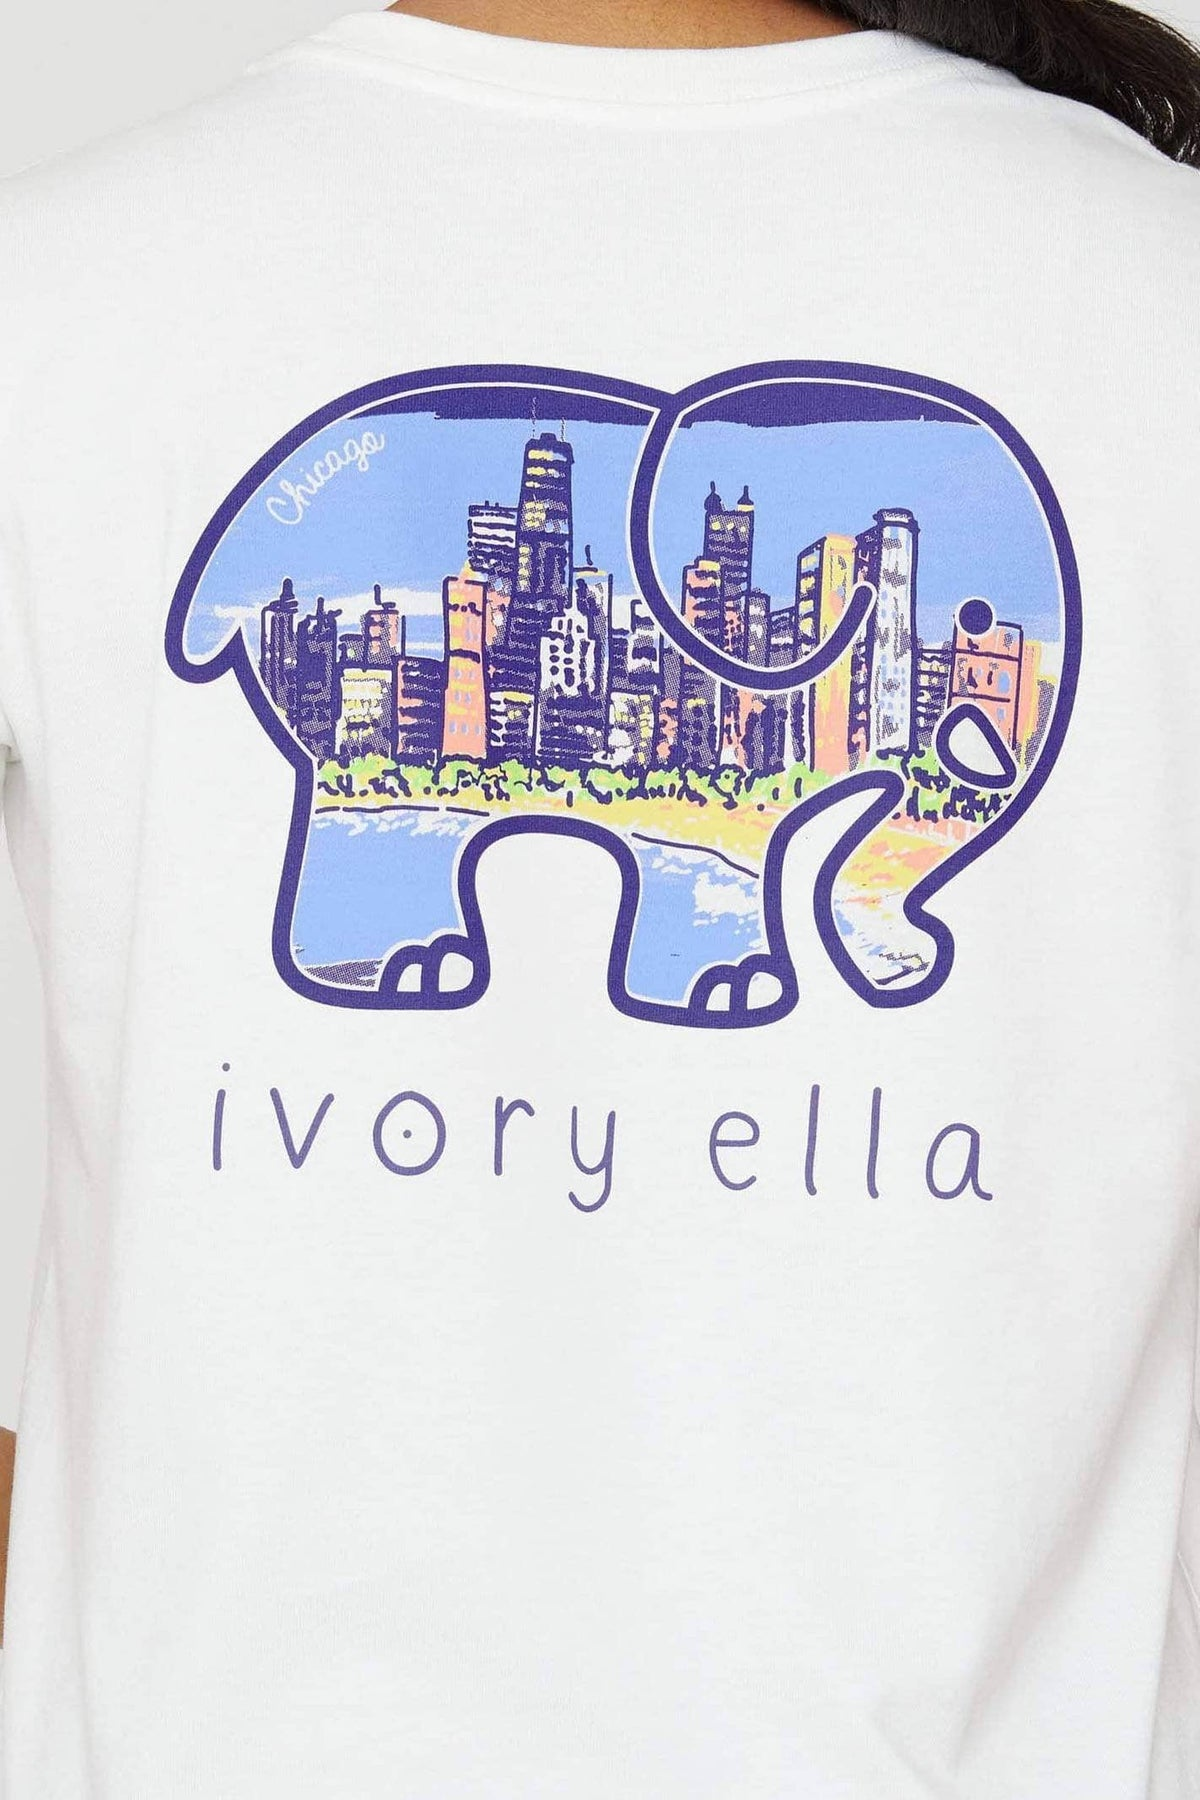 Ivory Ella Women's Short Sleeve Tees Soft White Chicago City Ella Tee